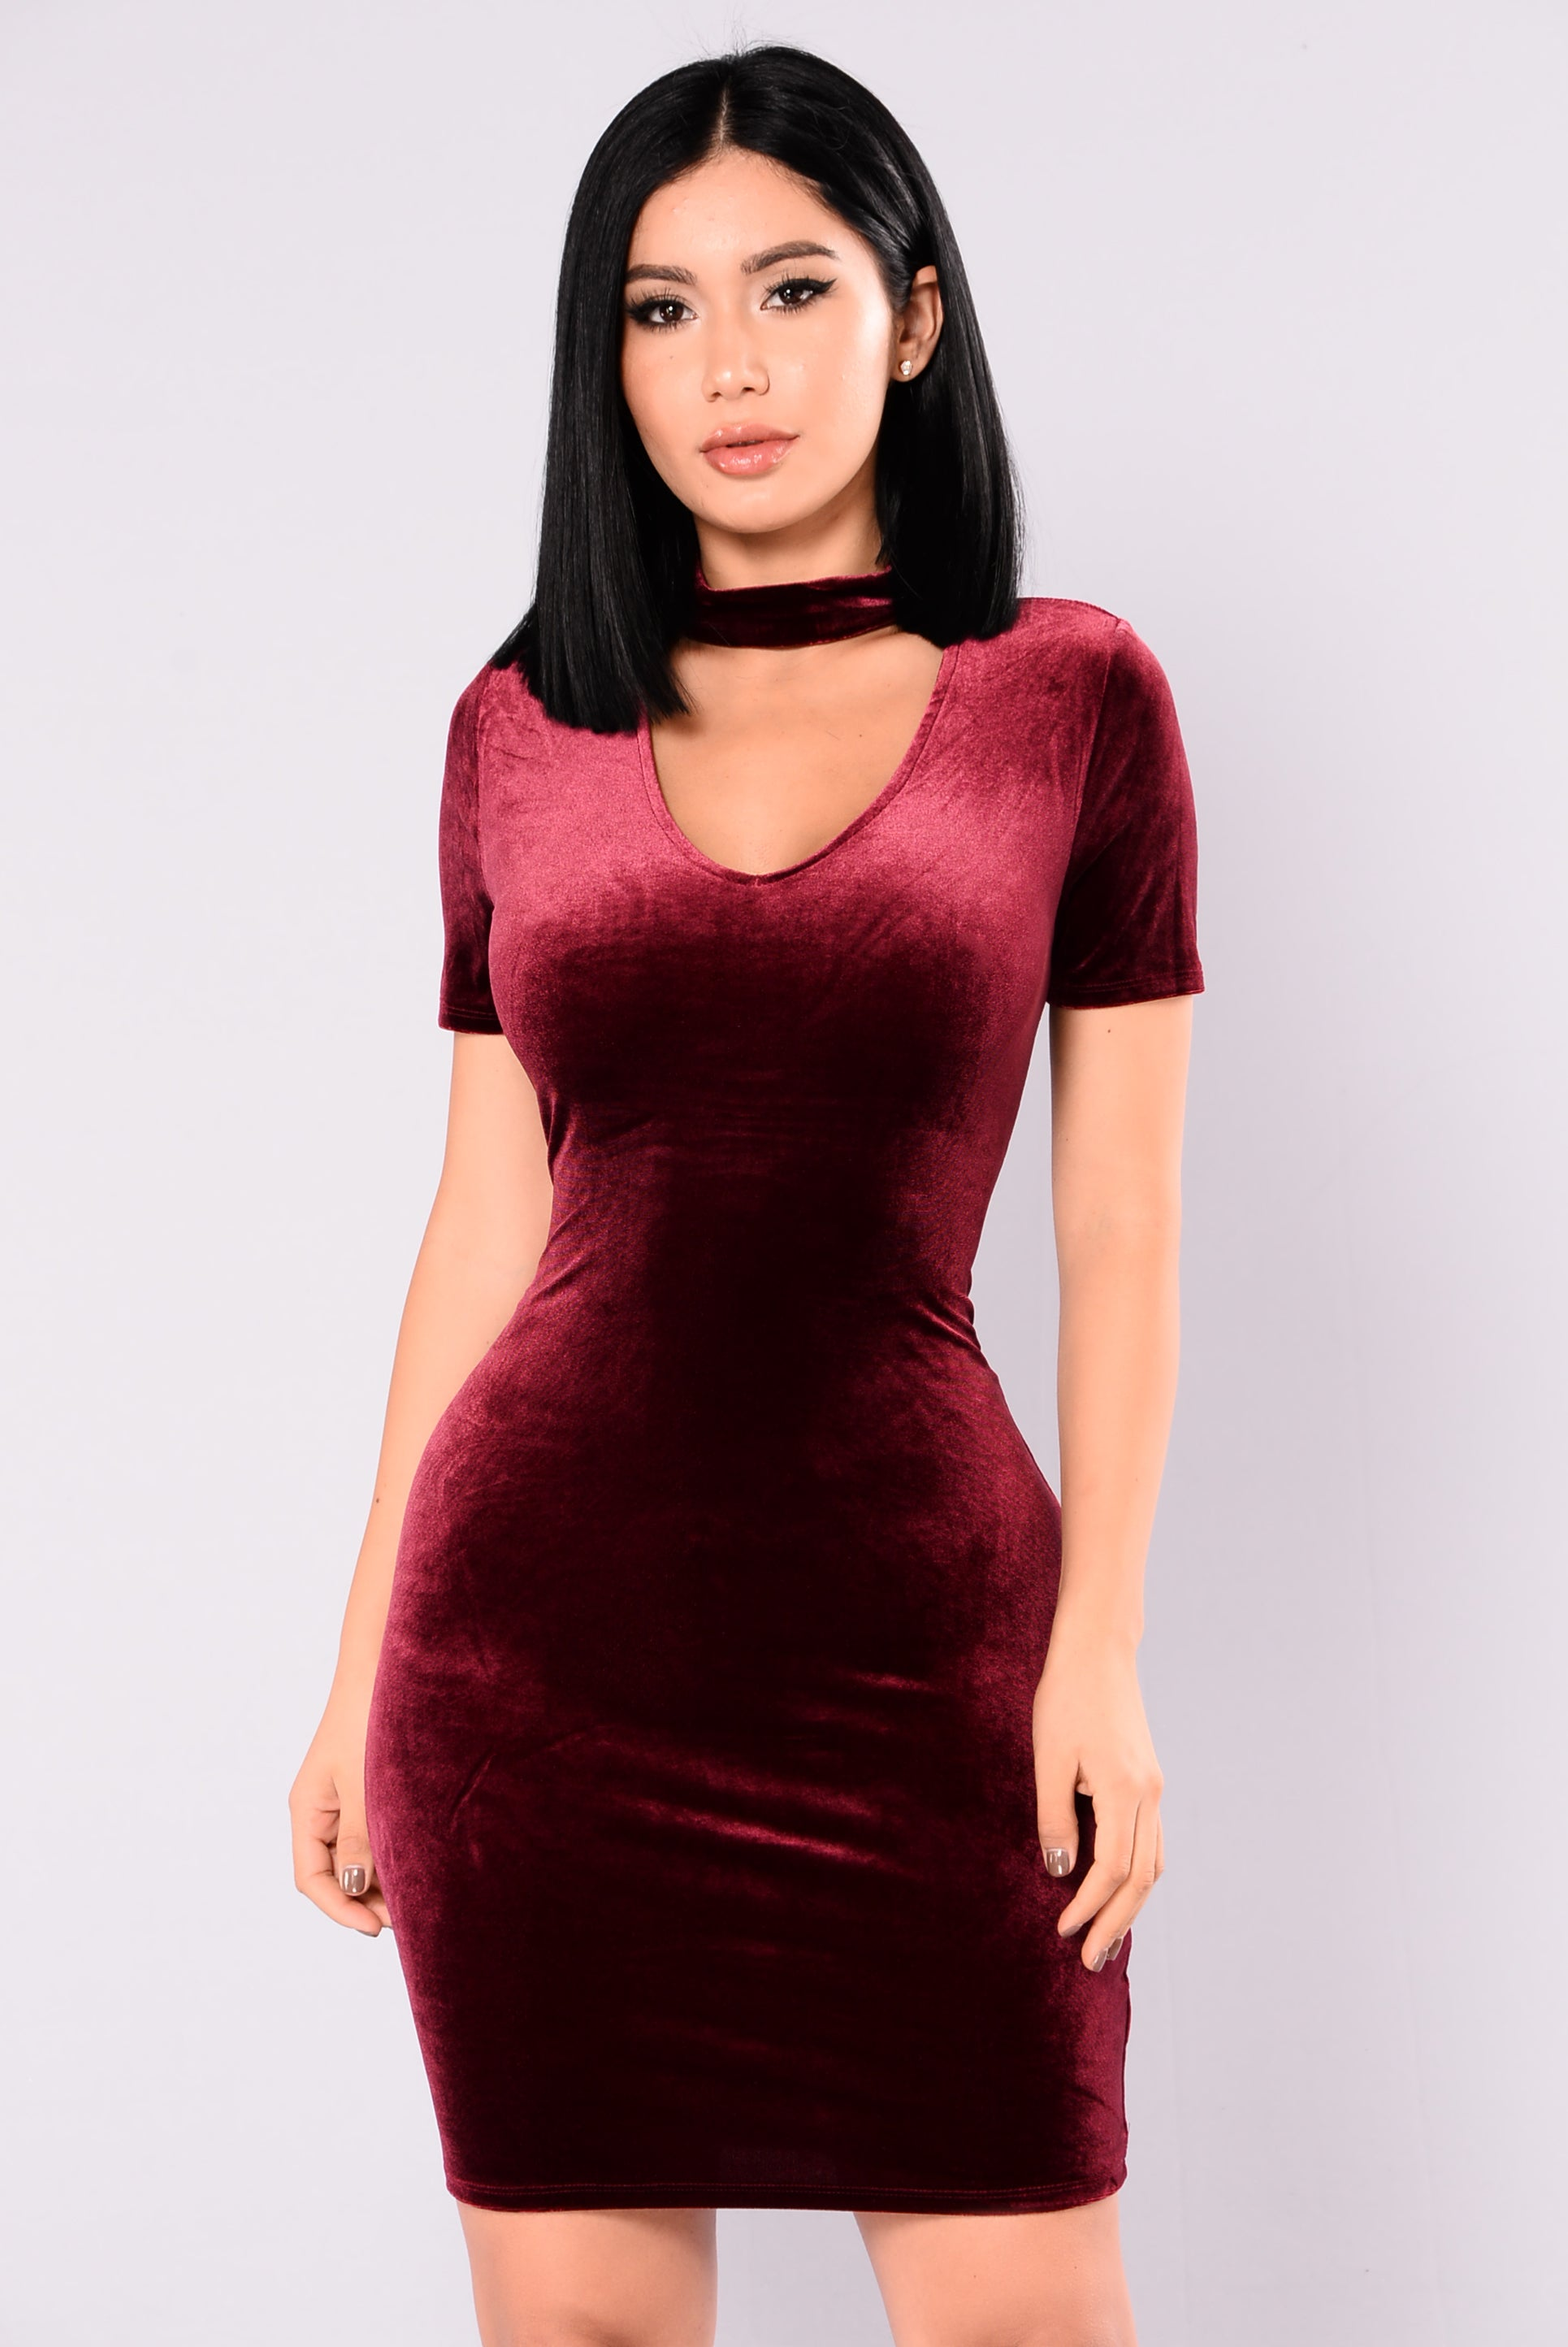 54635433847 Velvet Burgundy Dress Fashion Nova – All About The Dress A Bridal ...